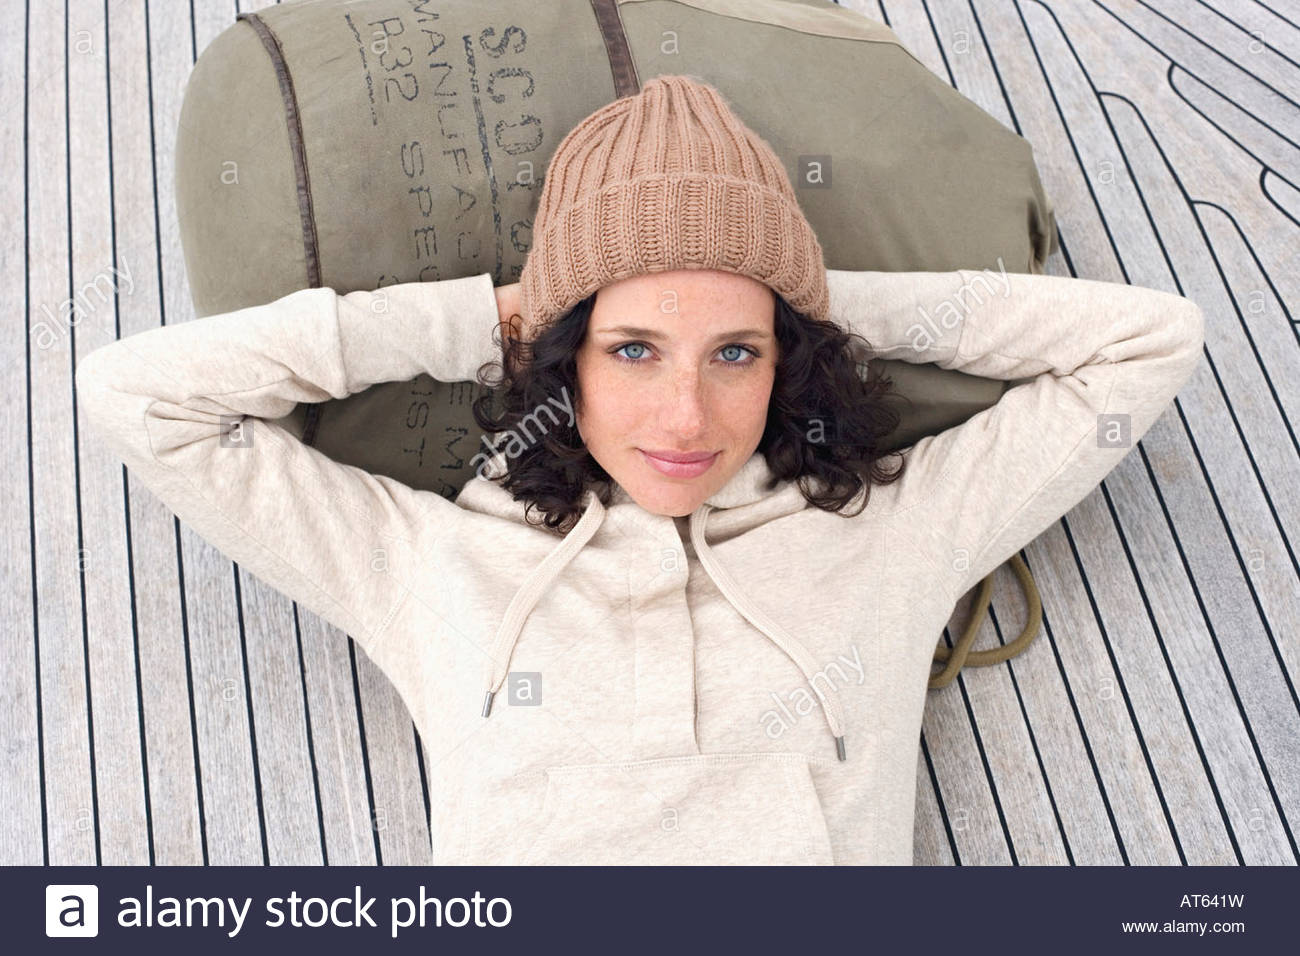 Germany, Baltic Sea, Lübecker Bucht, Portrait of a young woman lying on deck of yacht, smiling - Stock Image